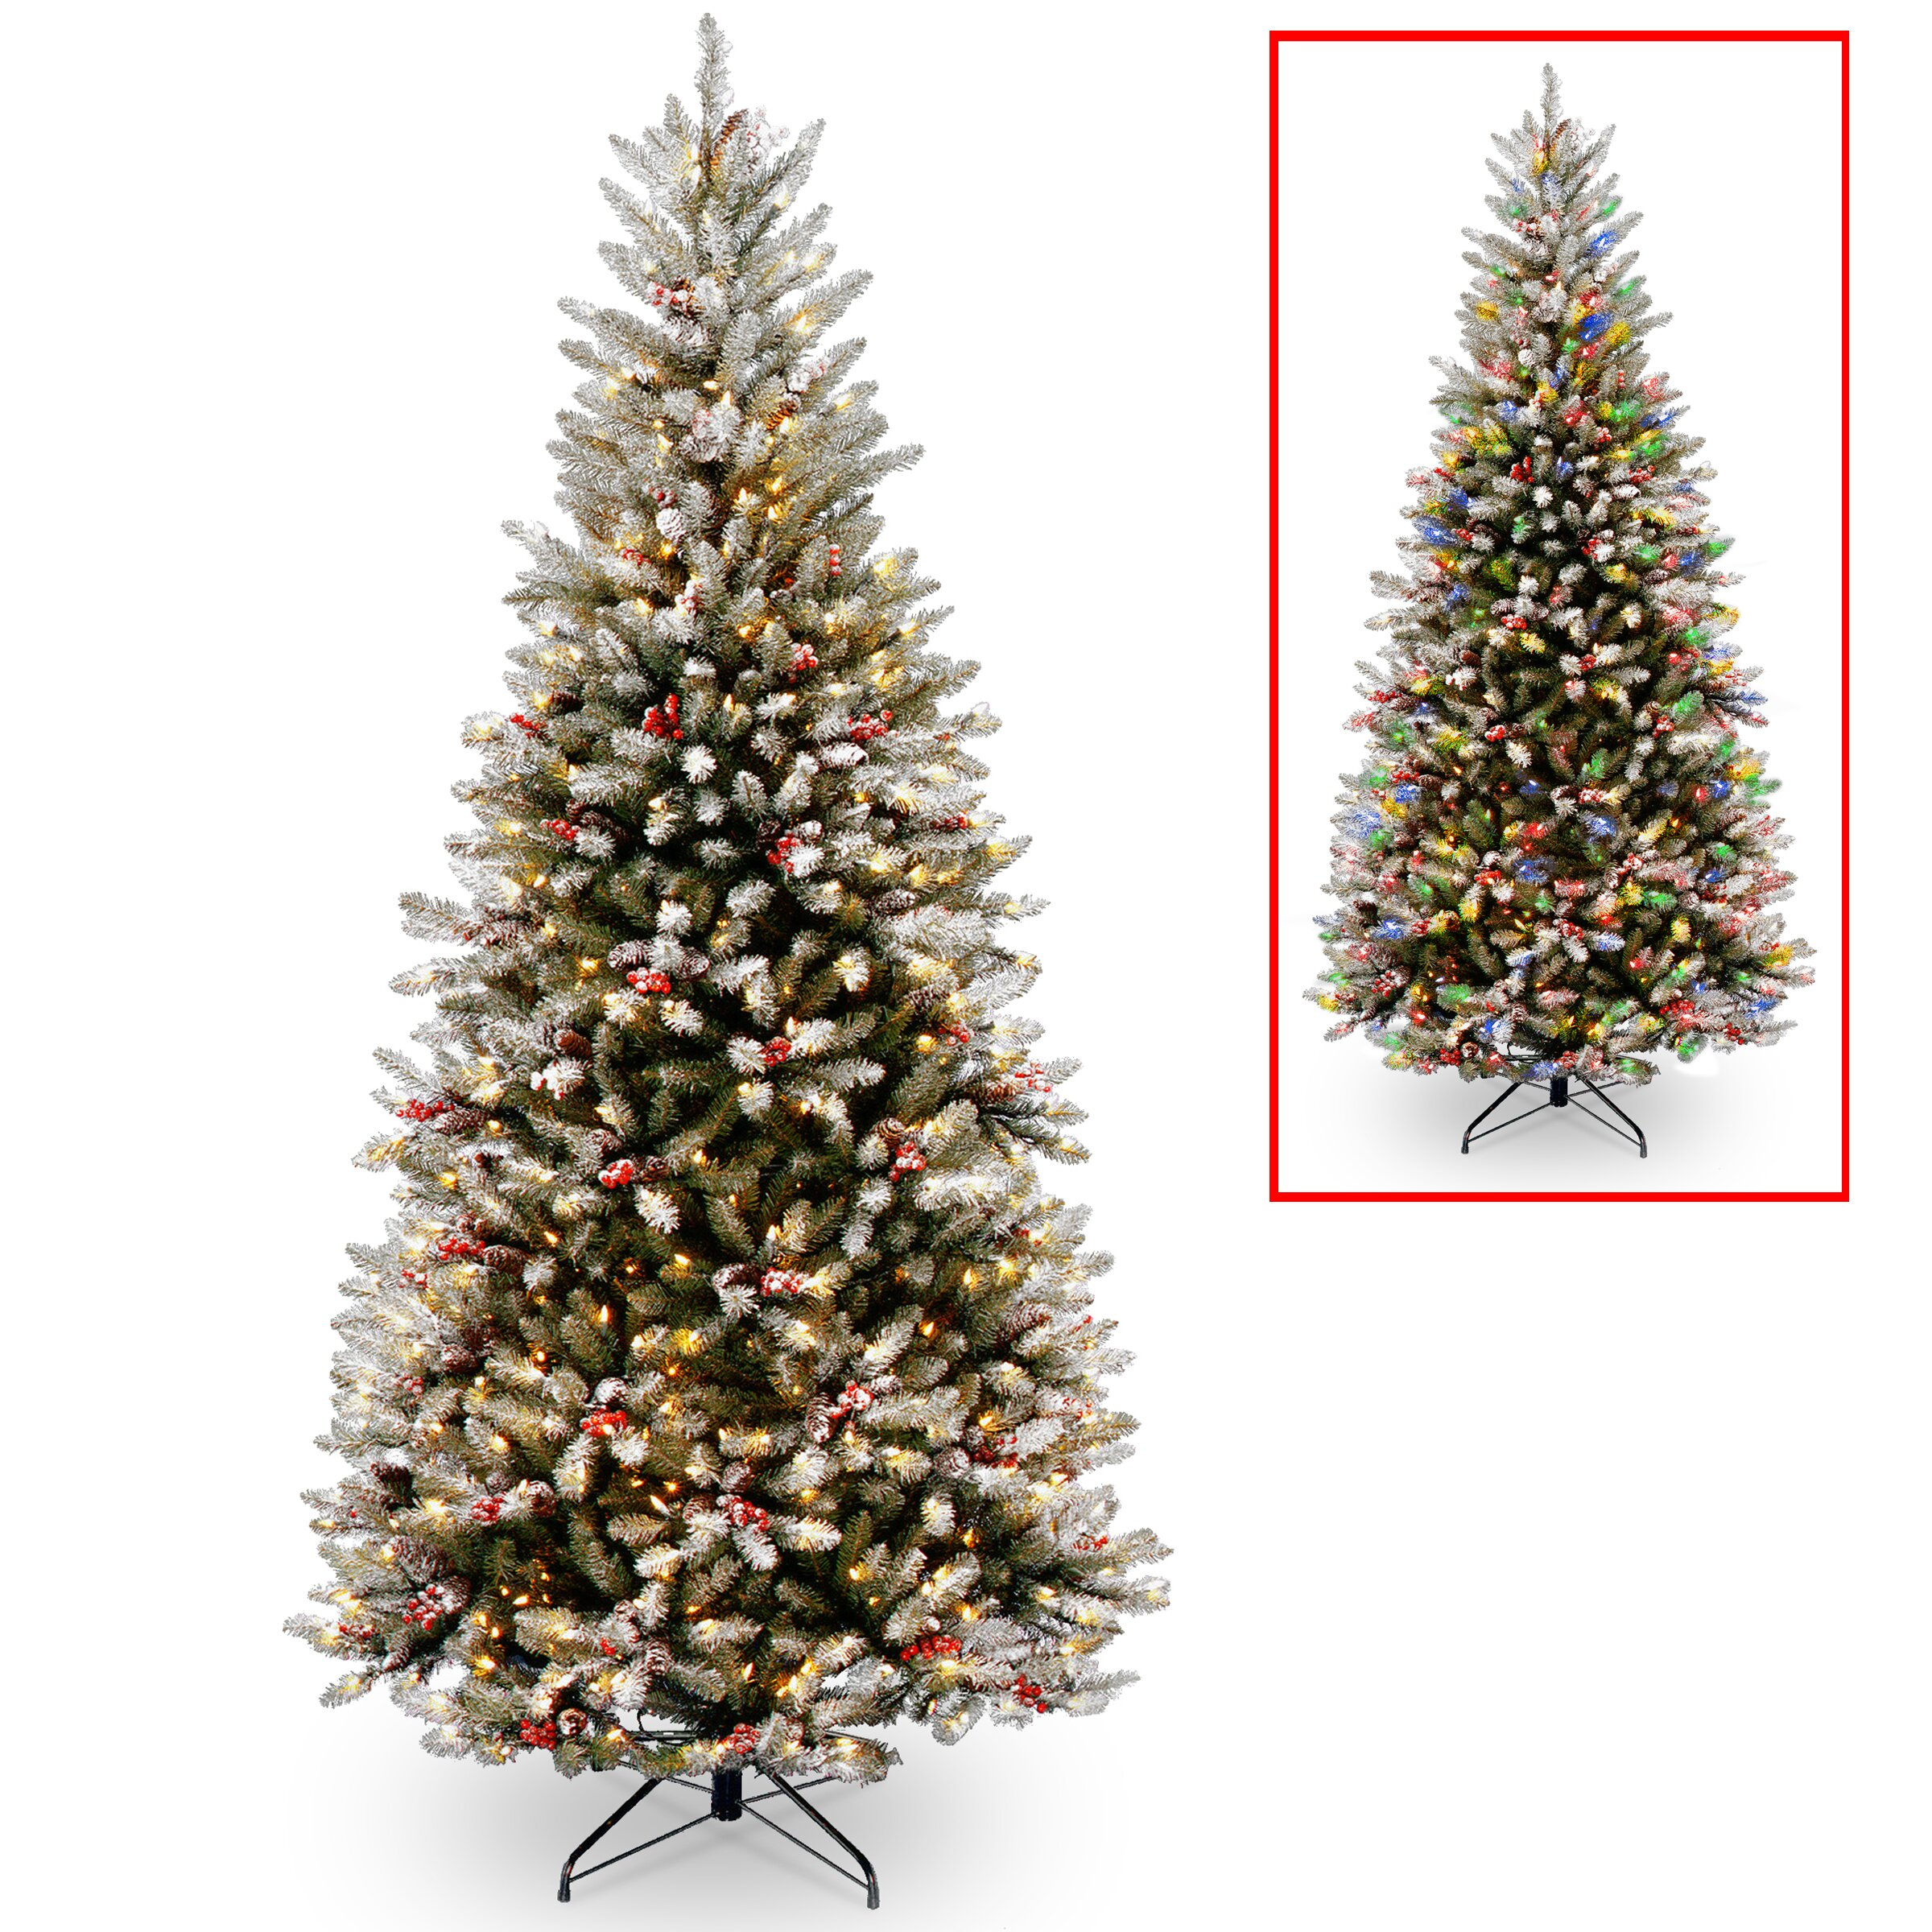 Green And White Christmas Tree: National Tree Co. 7.5' Frosted Green Fir Trees Artificial